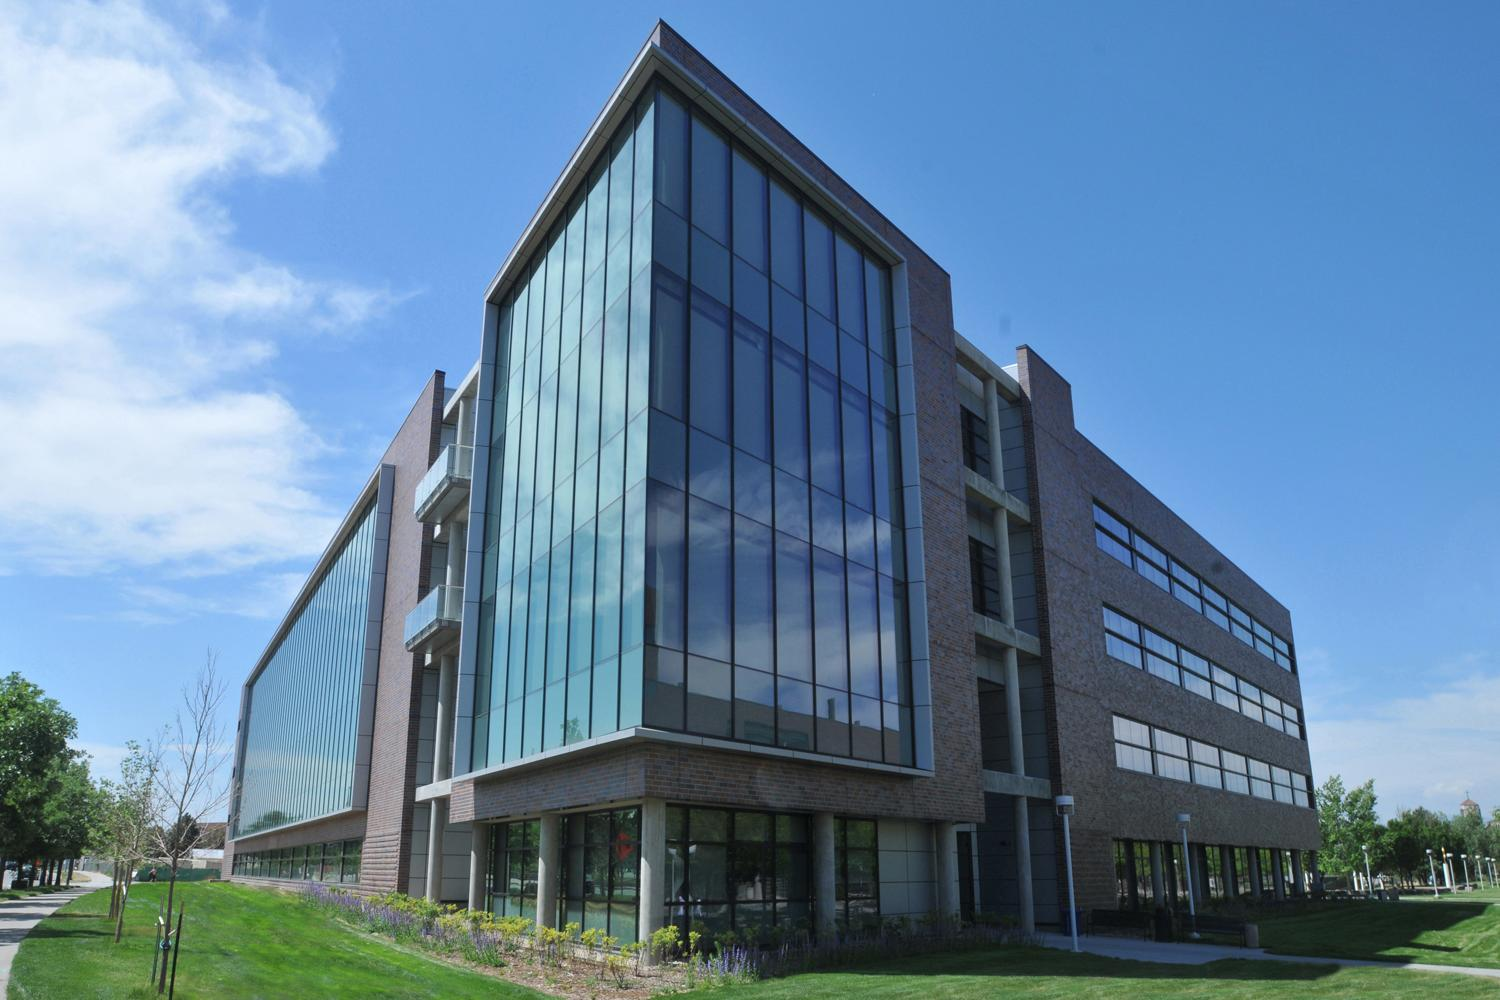 view of the Science Building